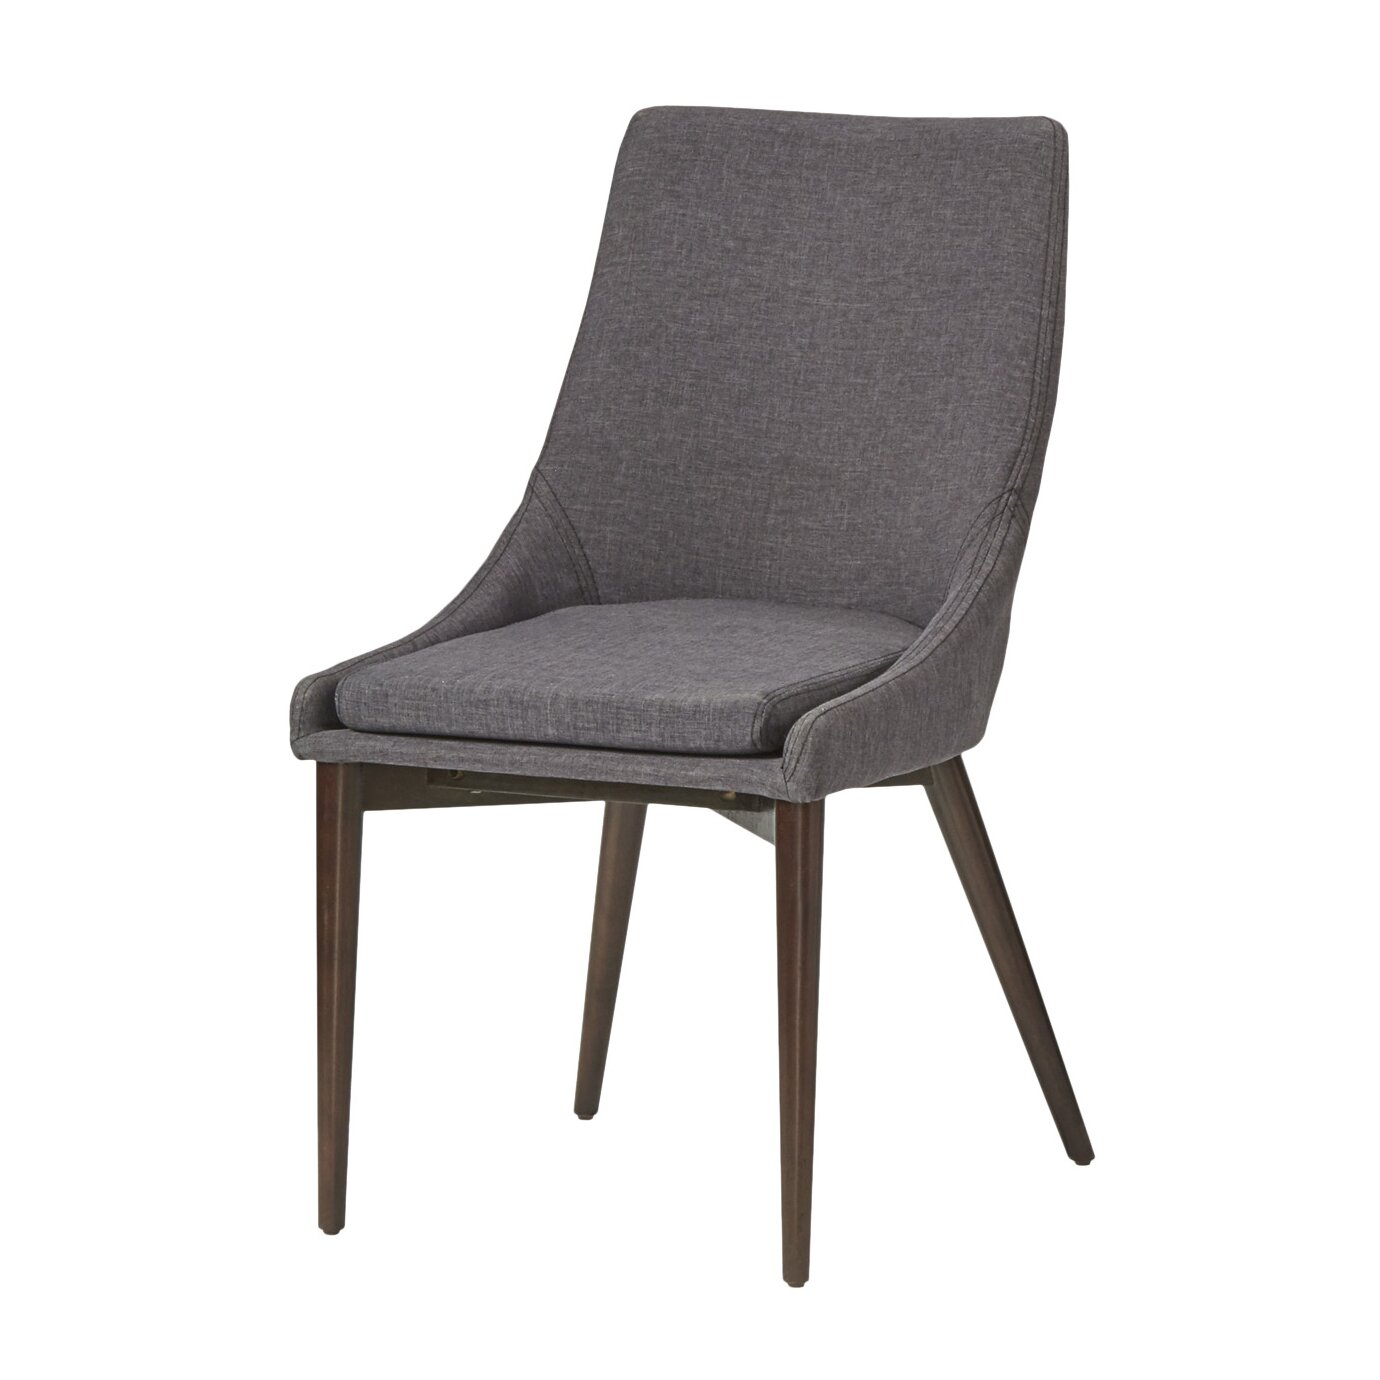 Brayden Studio Bedoya Parsons Chair & Reviews